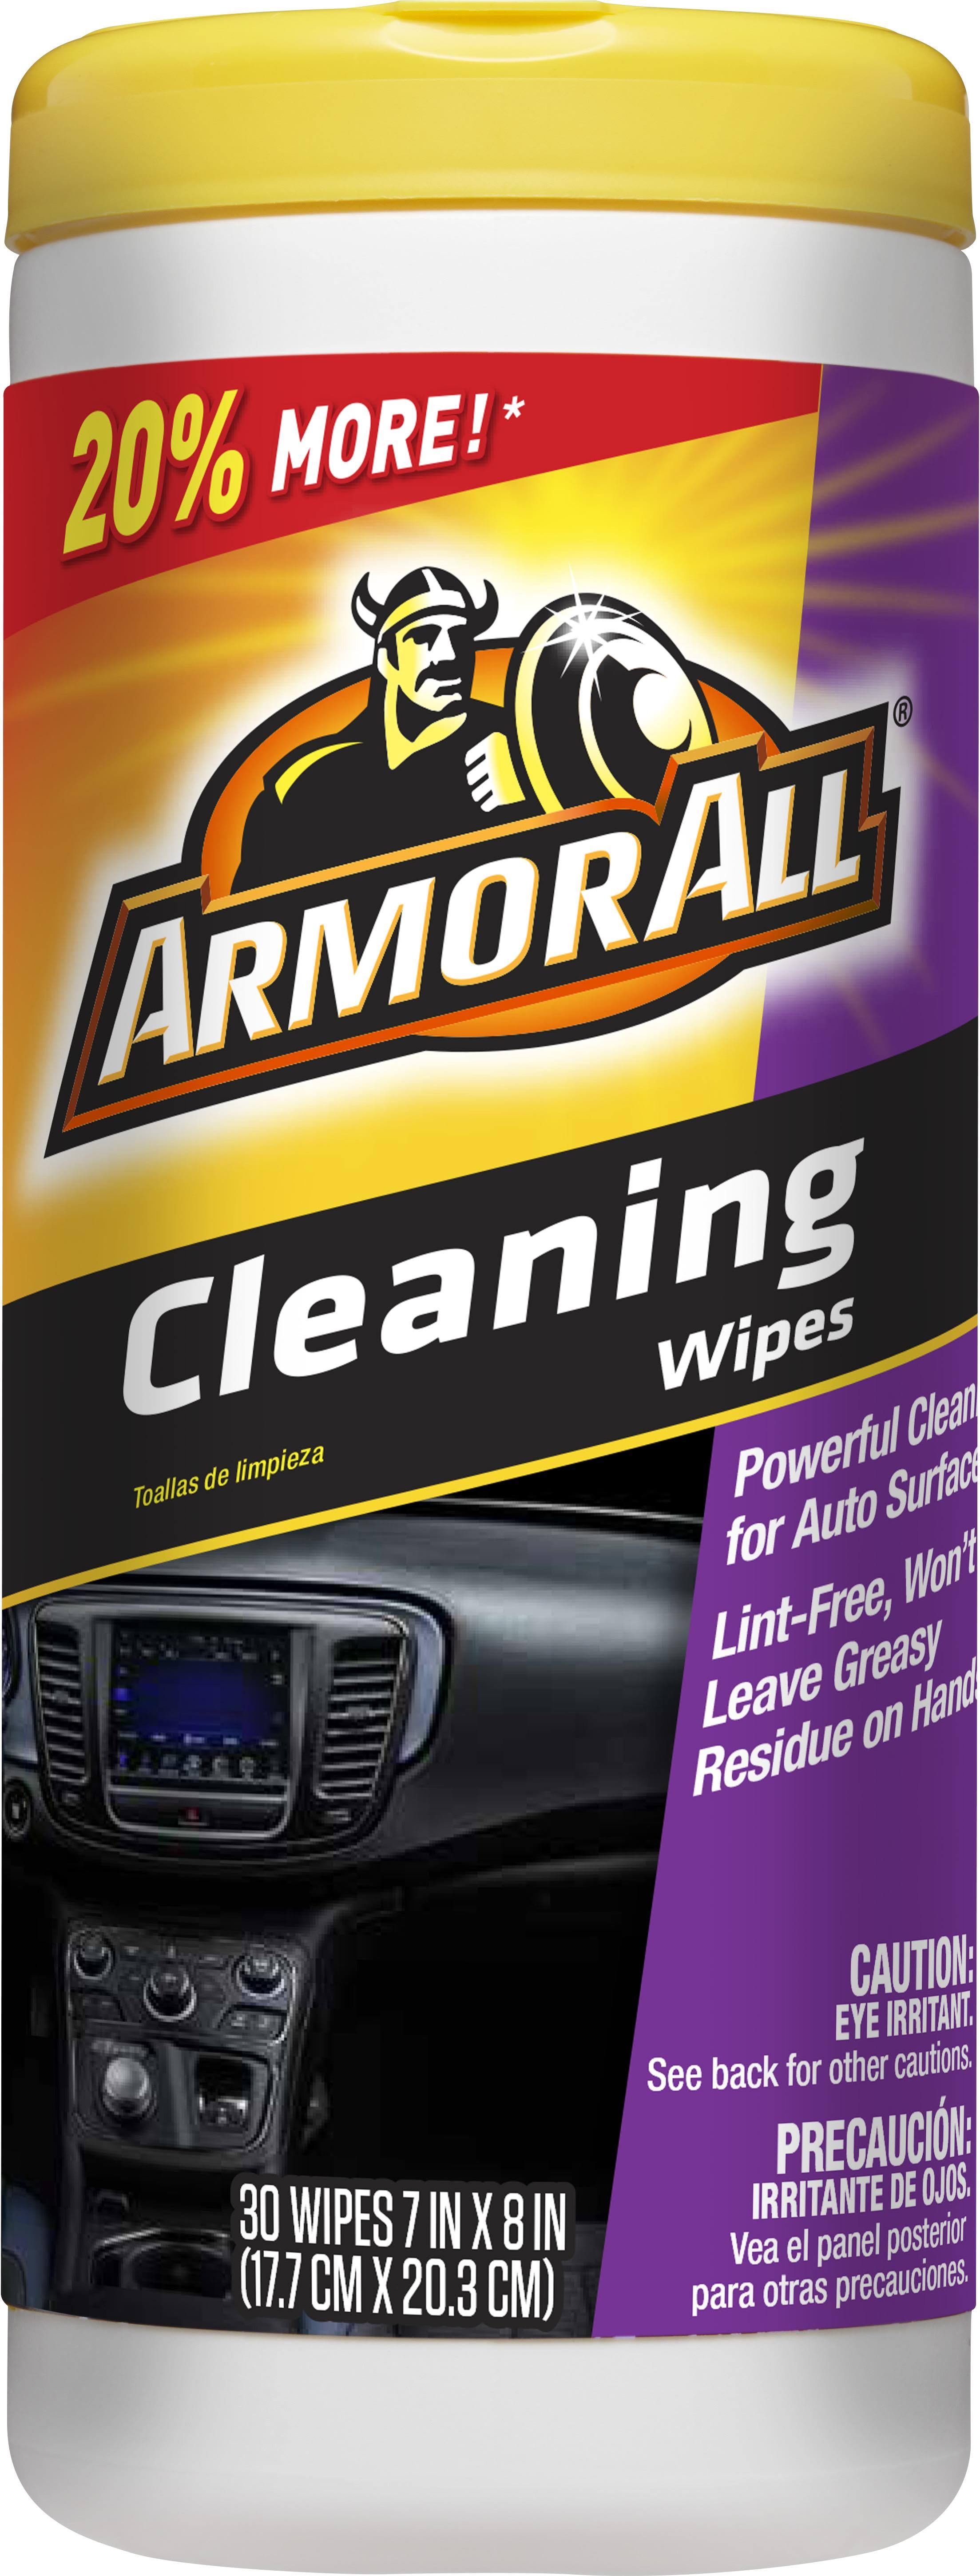 Armor All Cleaning Wipes - 30ct